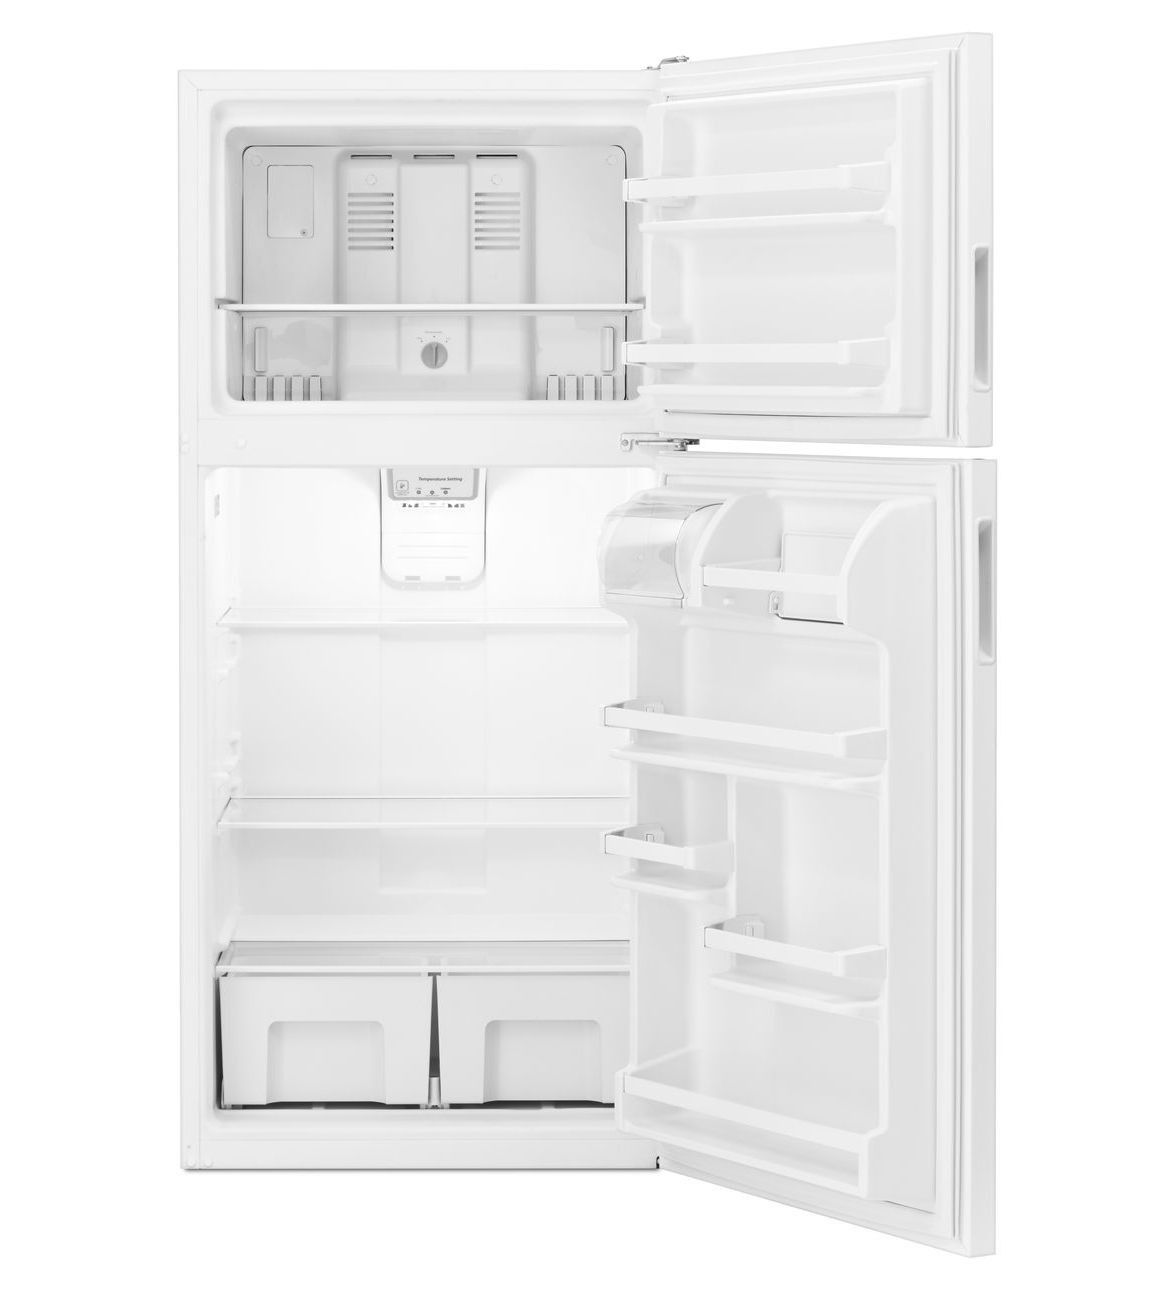 Amanaâ® 30-inch Wide Top-freezer Refrigerator With Glass Shelves – 18 Cu Ft